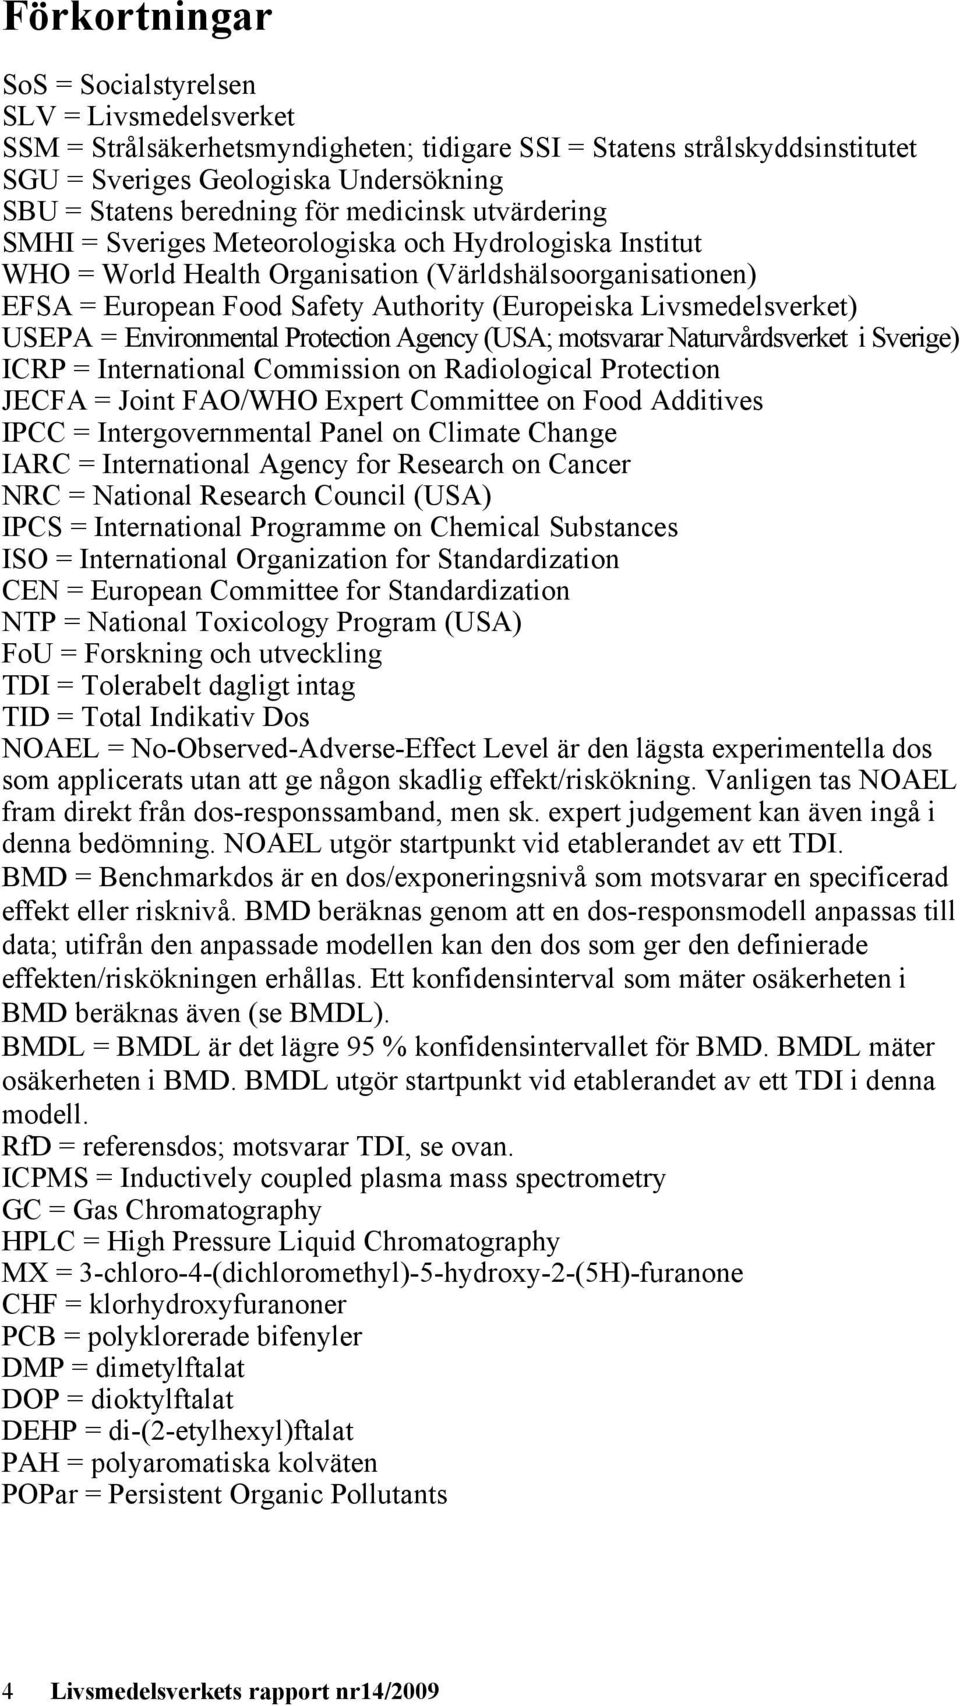 Livsmedelsverket) USEPA = Environmental Protection Agency (USA; motsvarar Naturvårdsverket i Sverige) ICRP = International Commission on Radiological Protection JECFA = Joint FAO/WHO Expert Committee